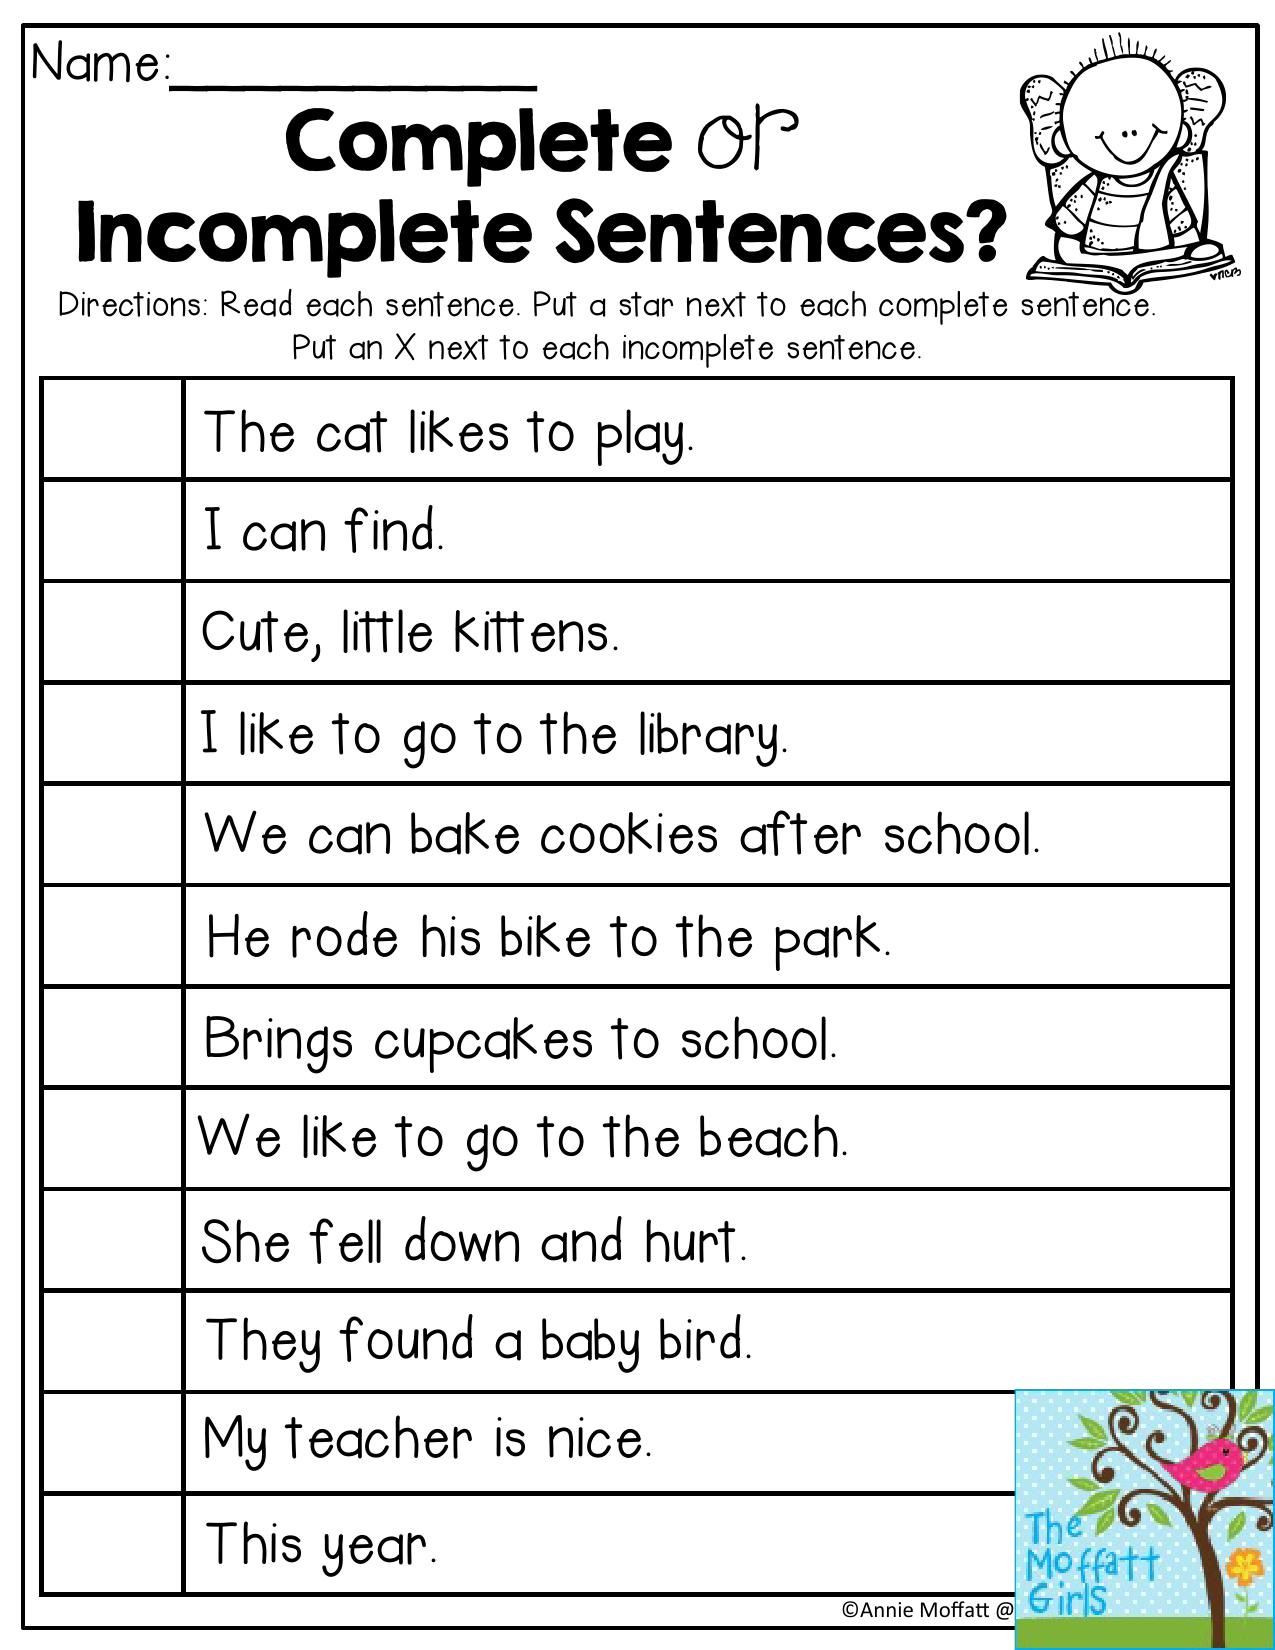 Complete Sentences Worksheets 1st Grade Plete or In Plete Sentences Read Each Sentence and